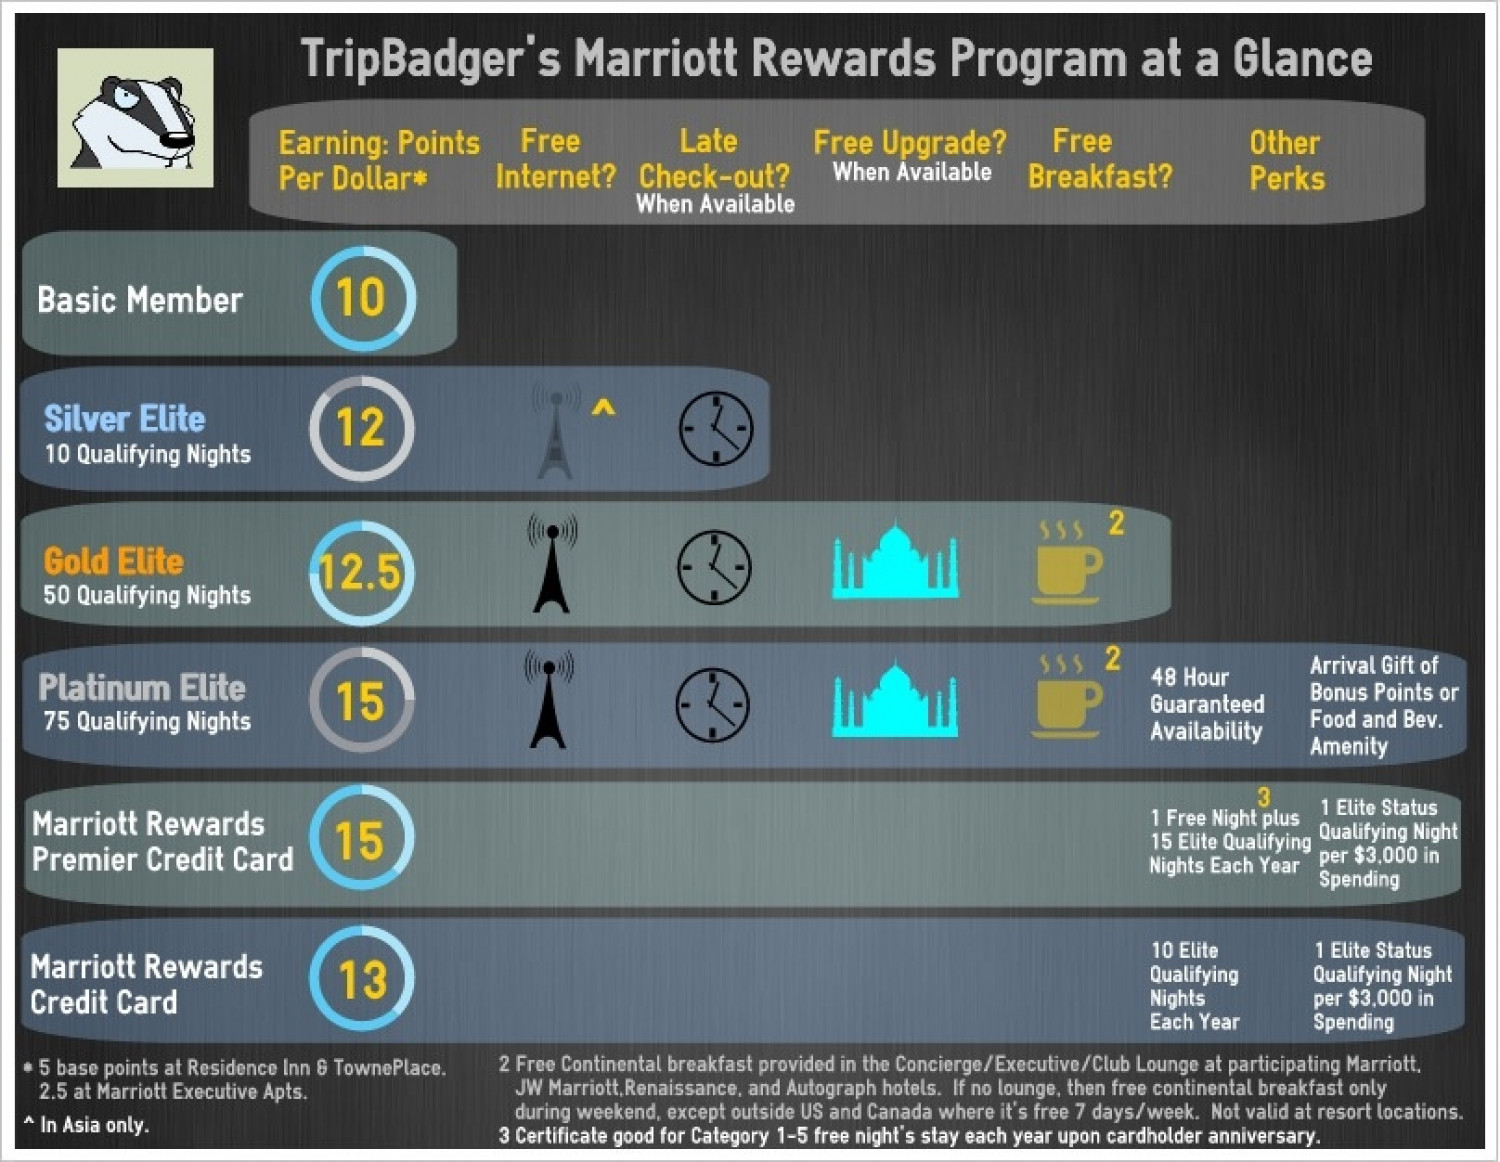 Marriott Rewards Program at a Glance Infographic